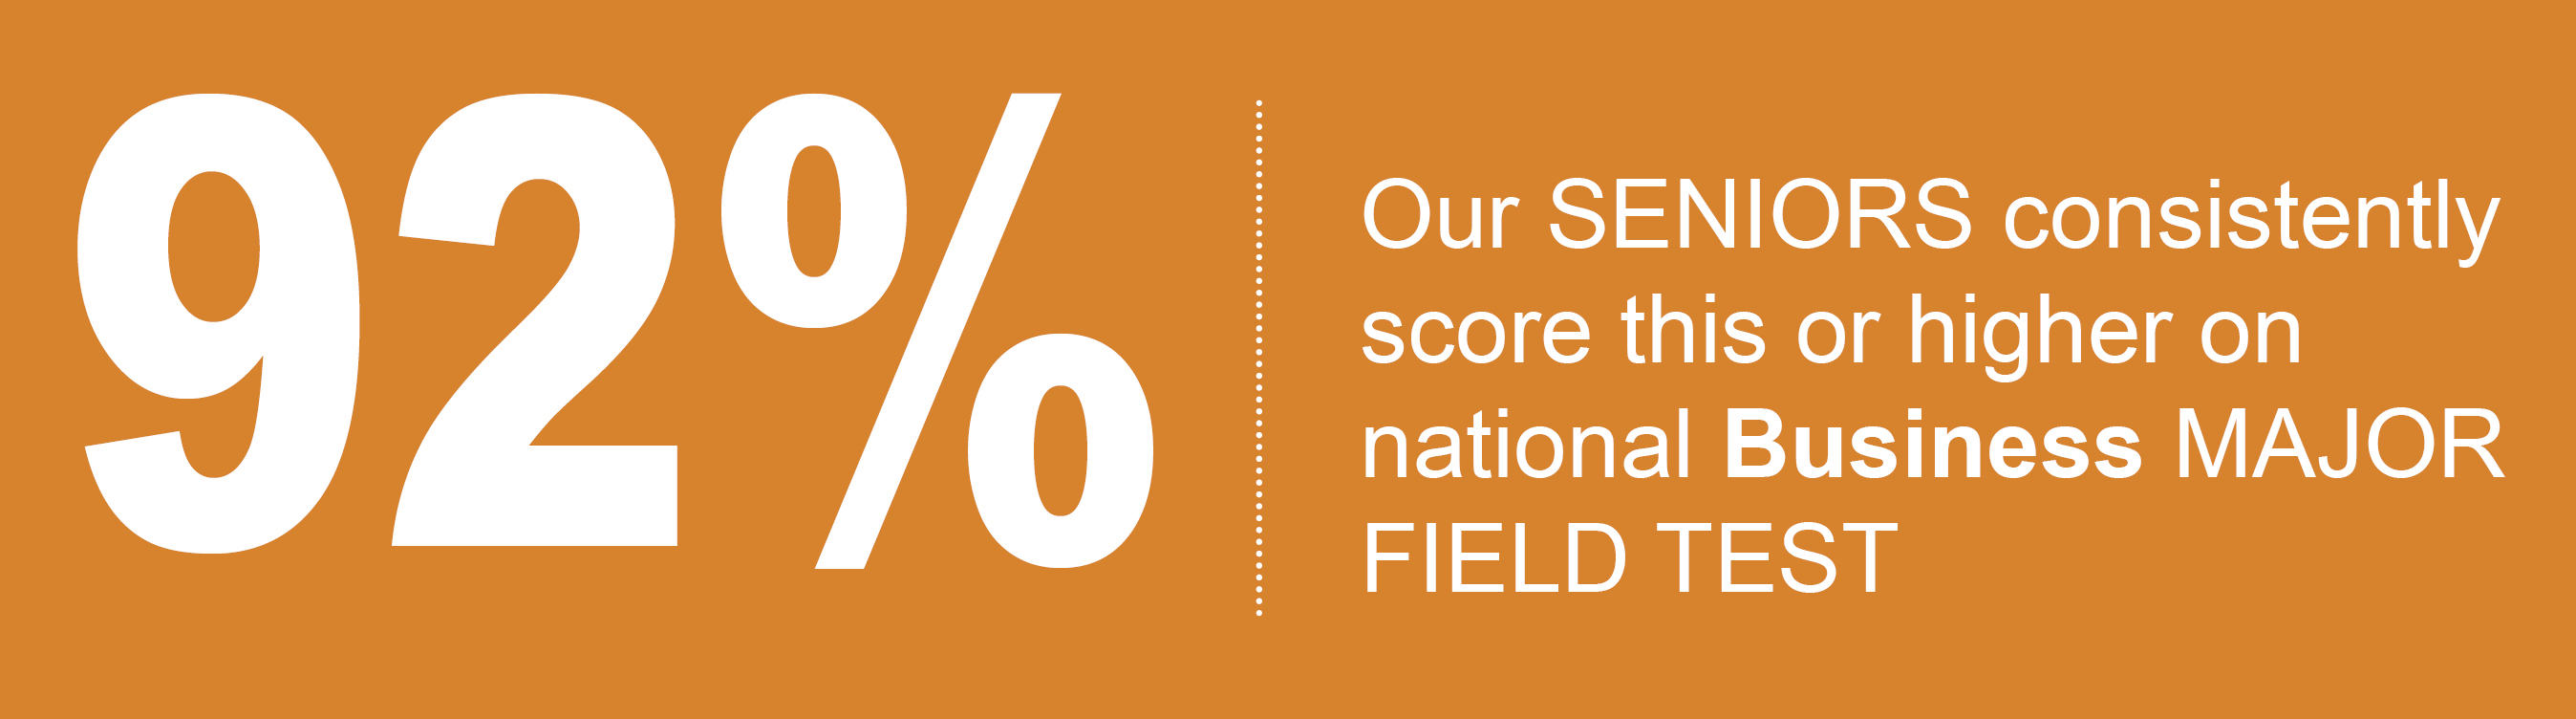 92%: Our seniors consistenly score this or higher on national business major field test